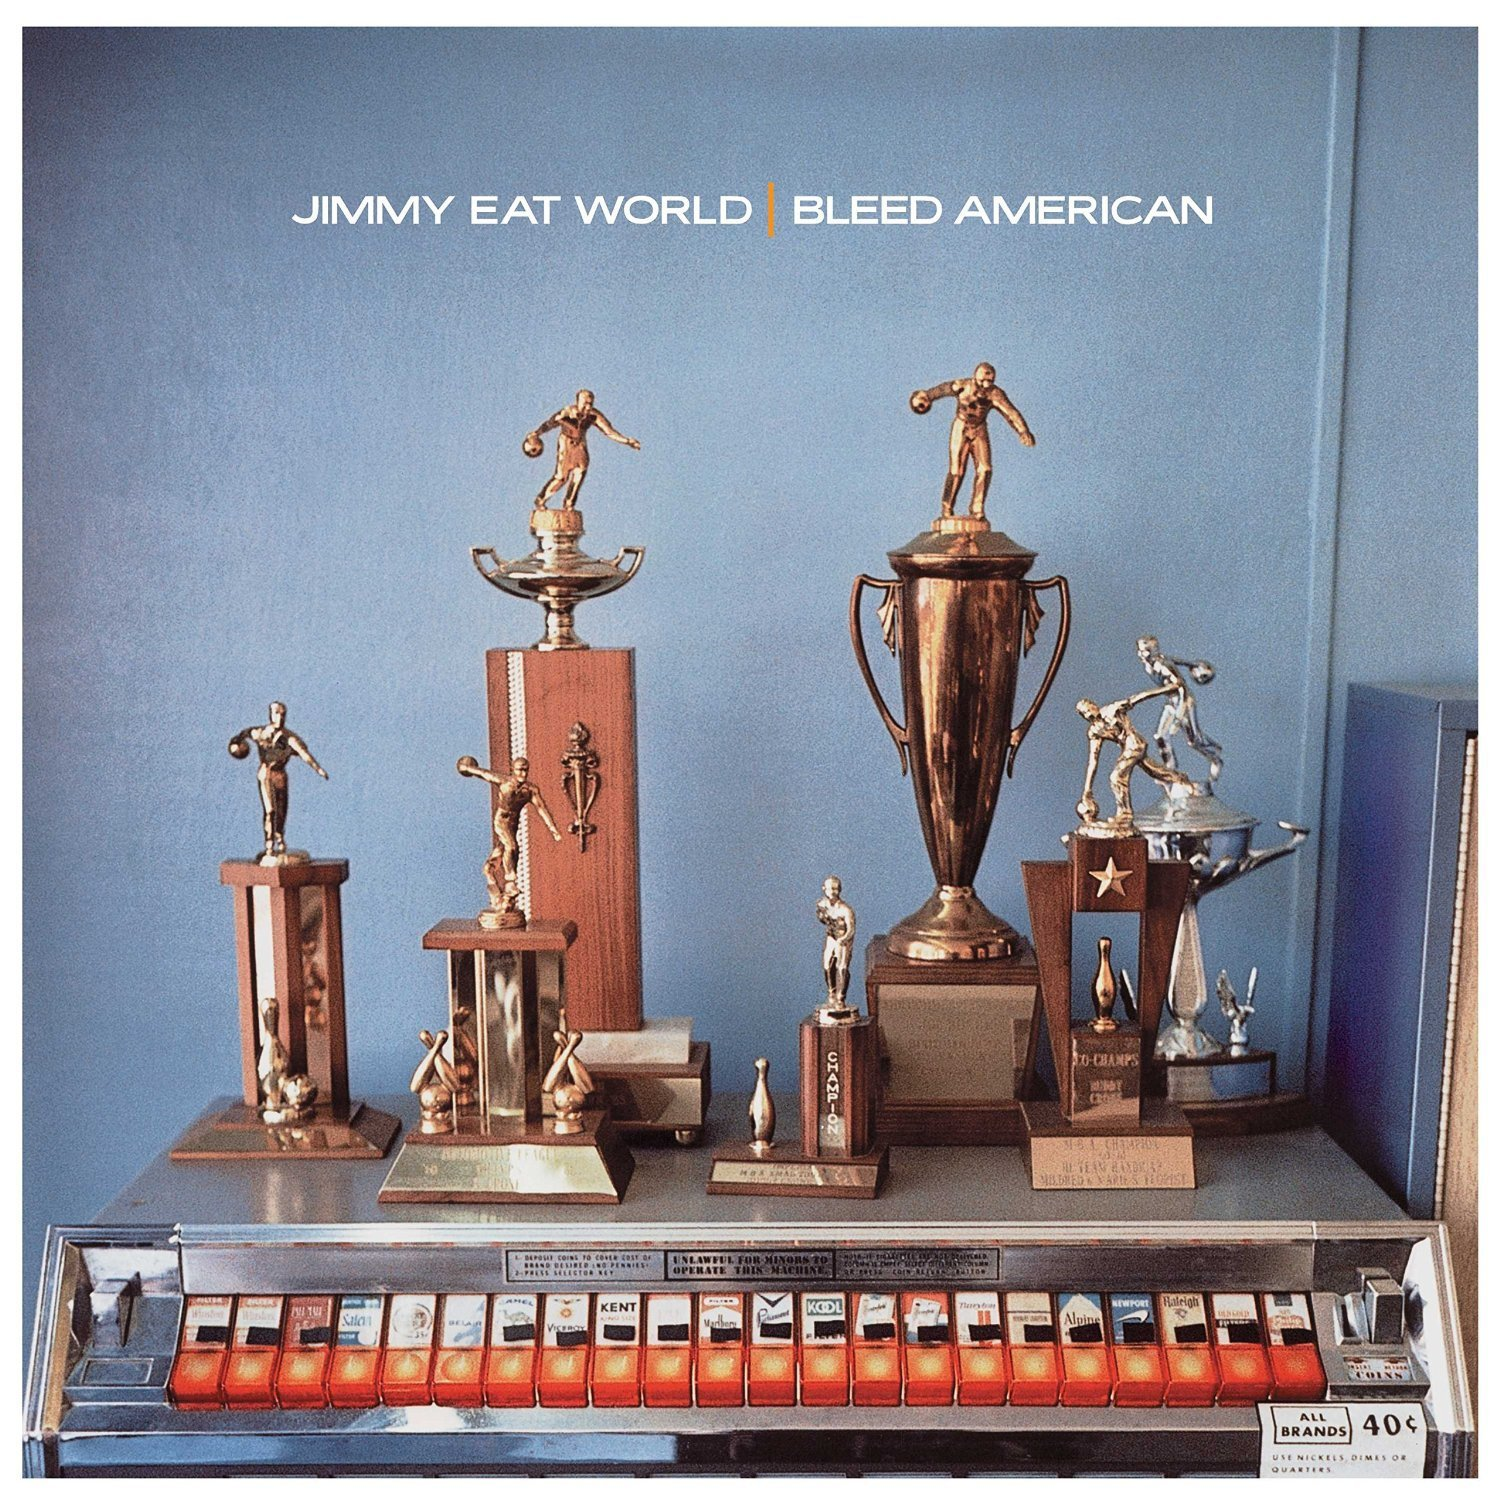 Jimmy Eat World, Bleed American